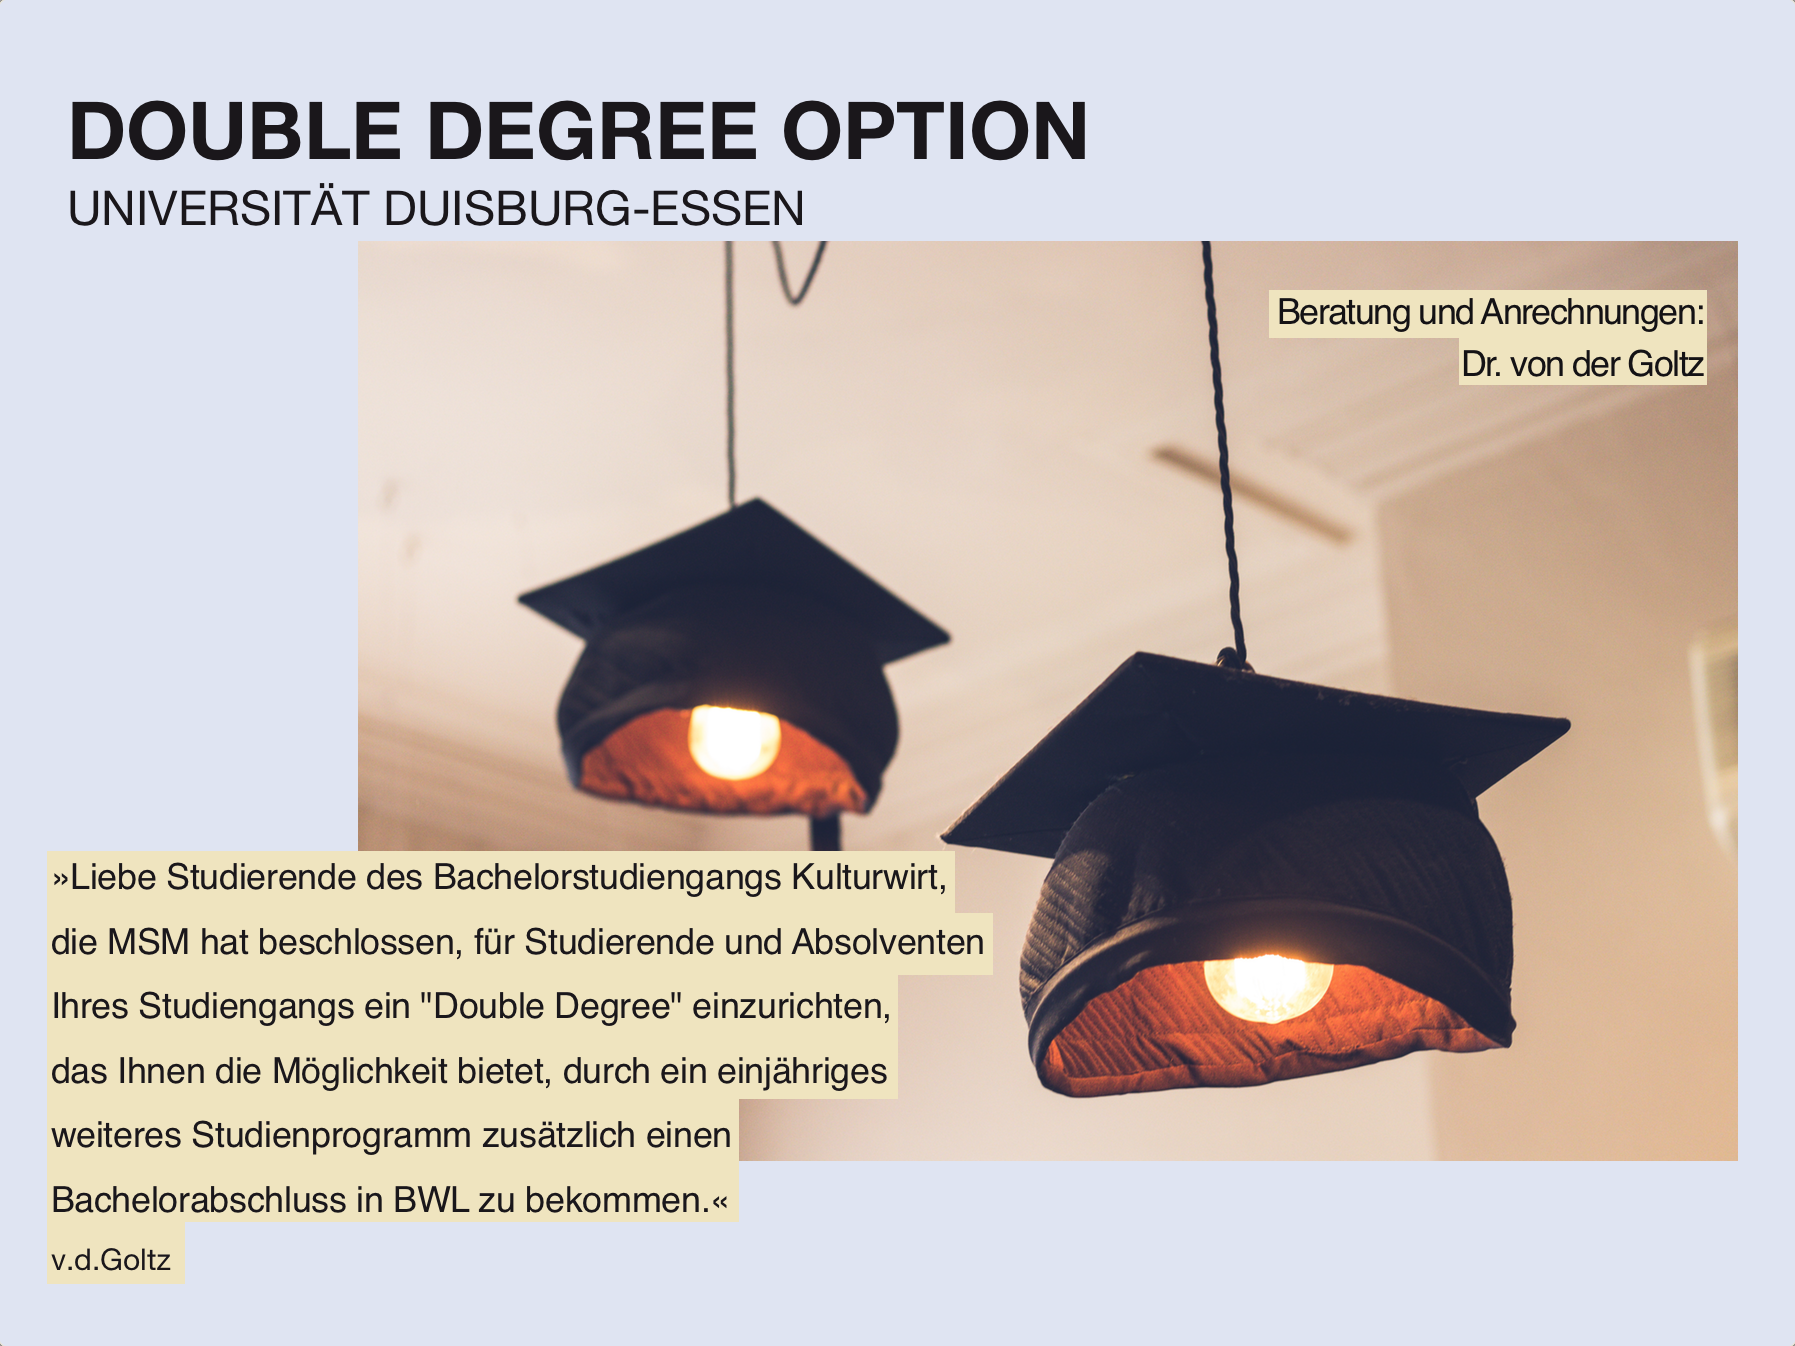 doubledegree2